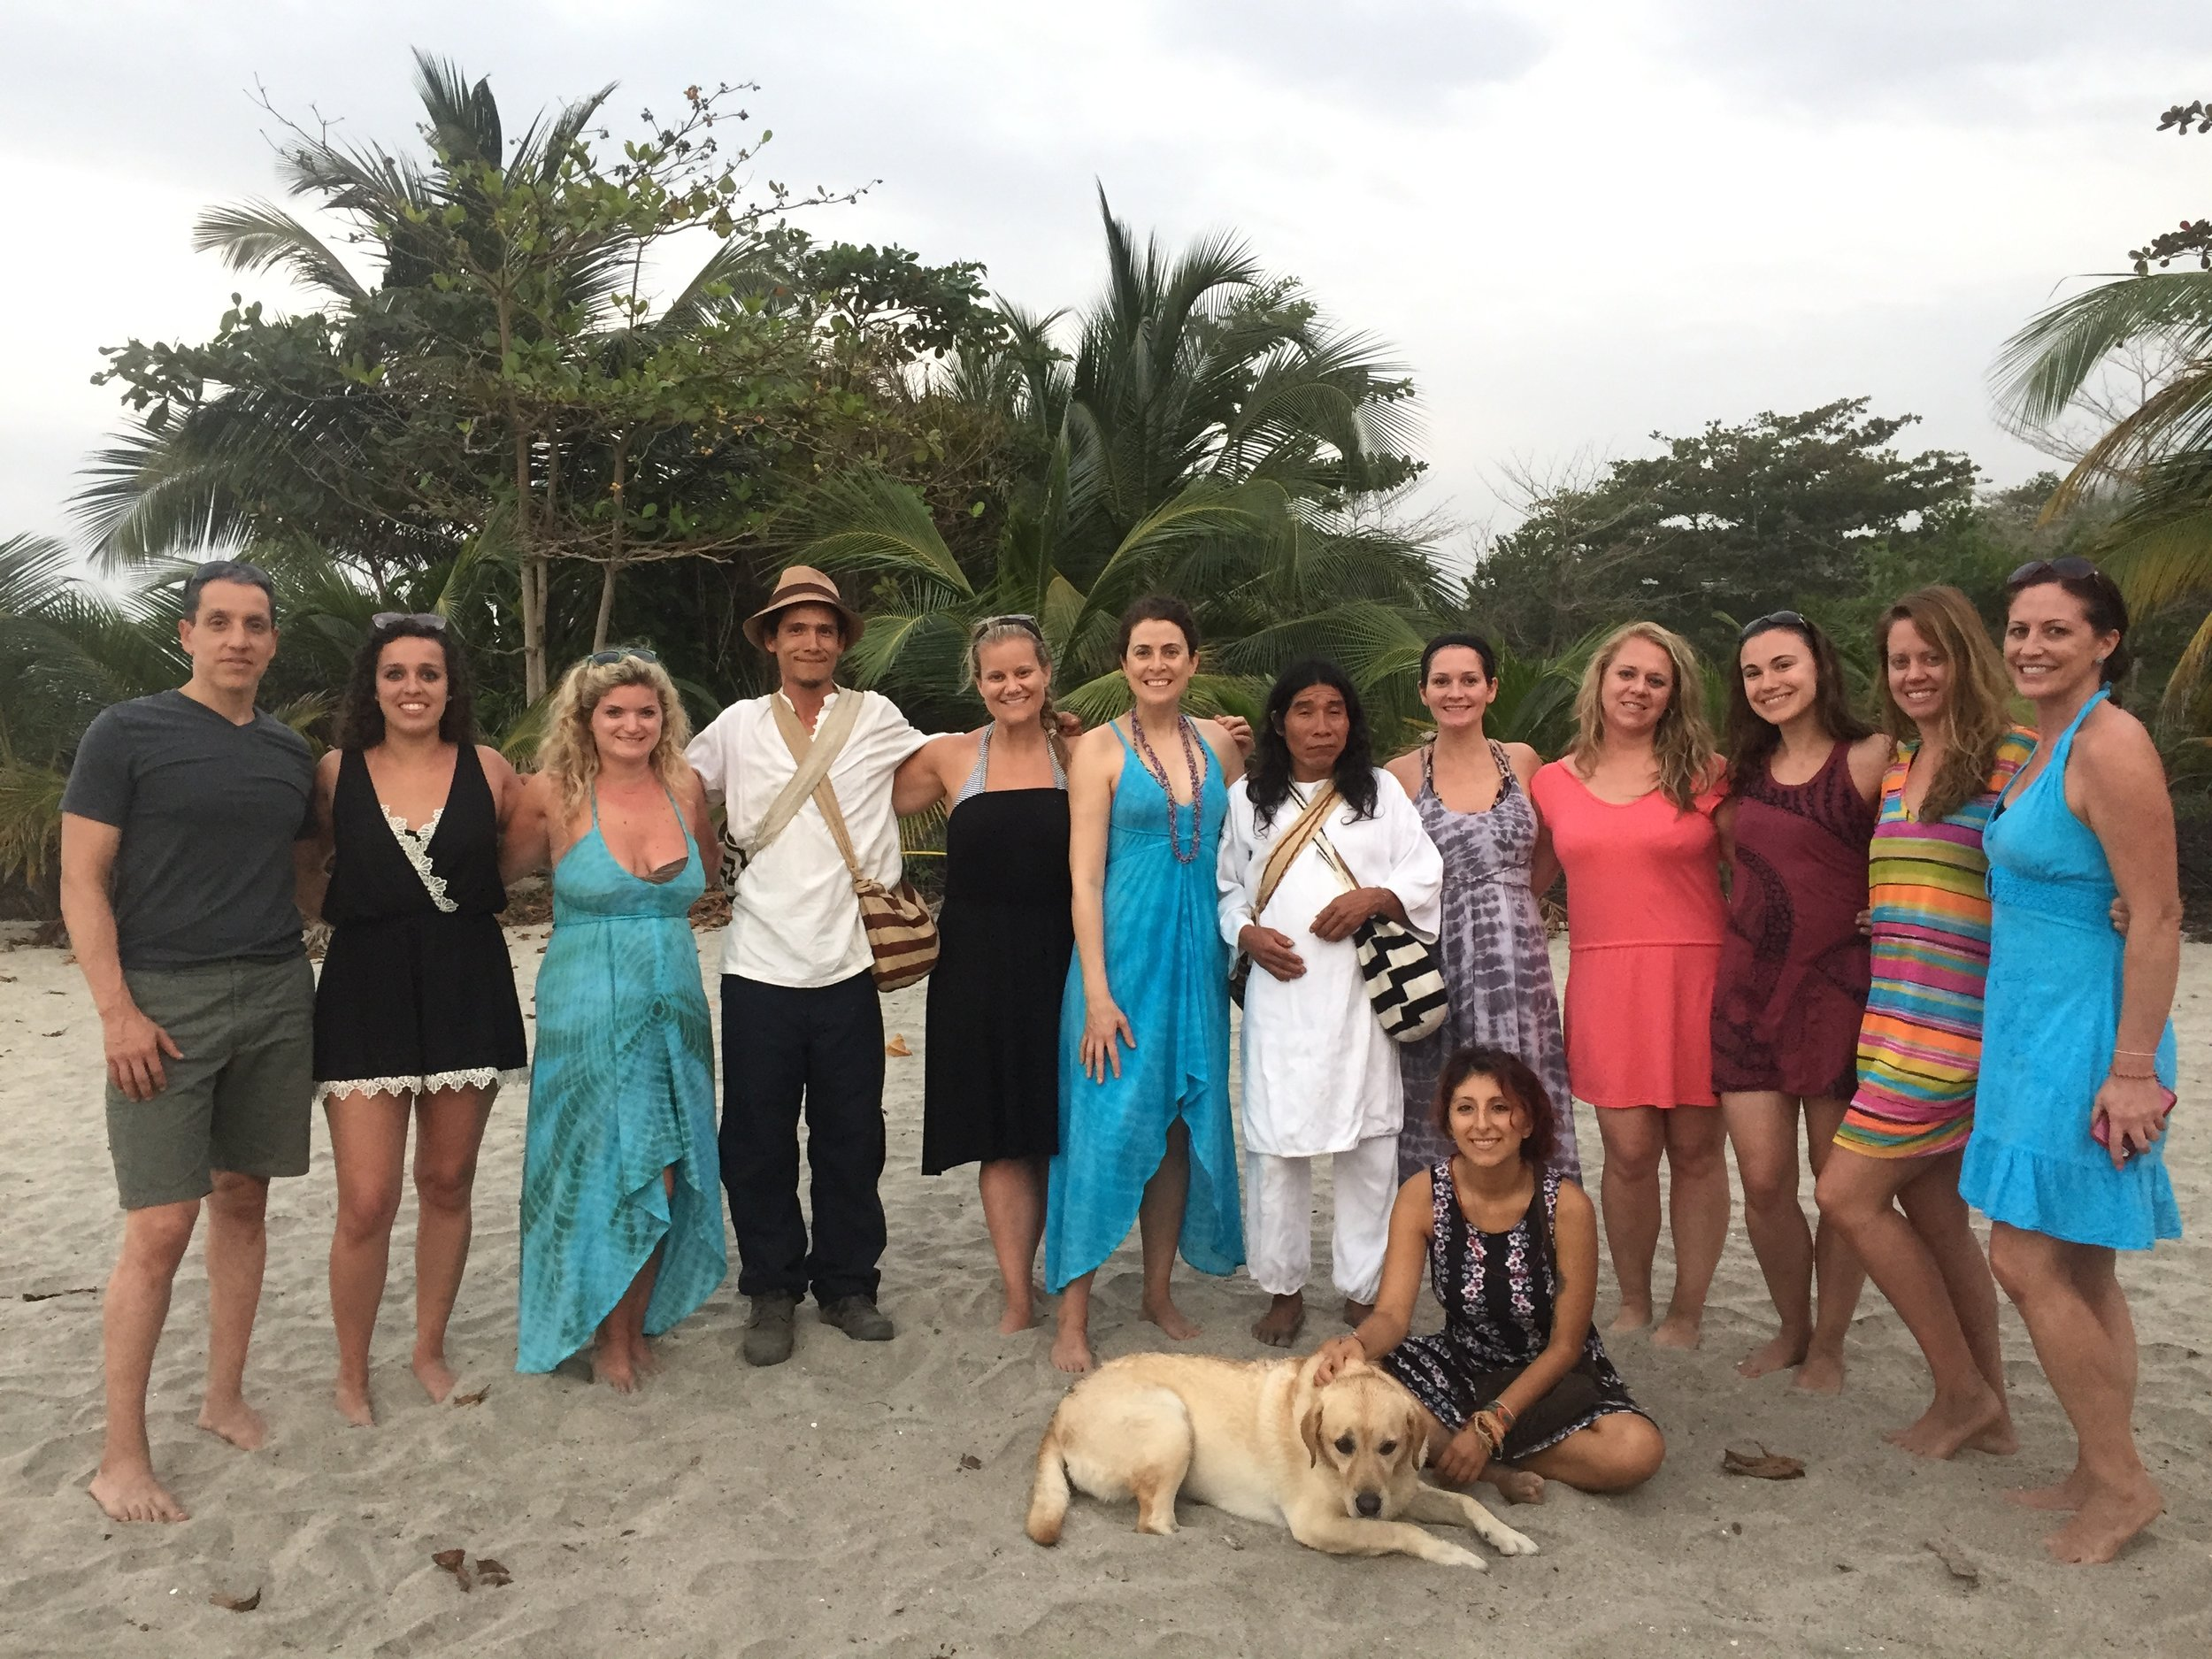 Joyful with Kogis and canines in Colombia. The Kogis are one of the numerous indigenous tribes in Colombia. They believe in the sacredness of Mother Earth.